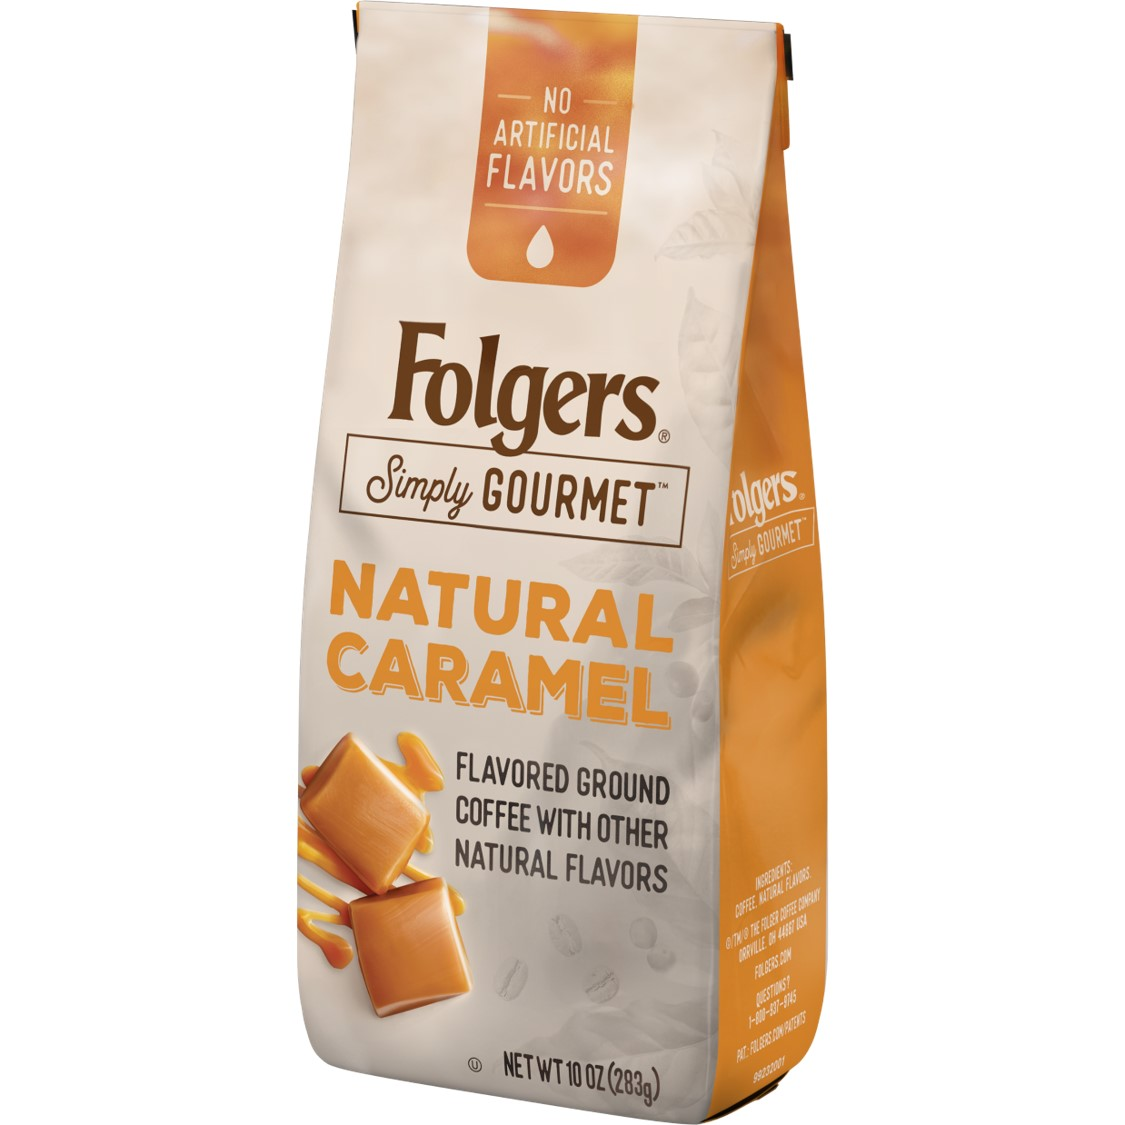 Folgers Simply Gourmet Natural Caramel Flavored Coffee